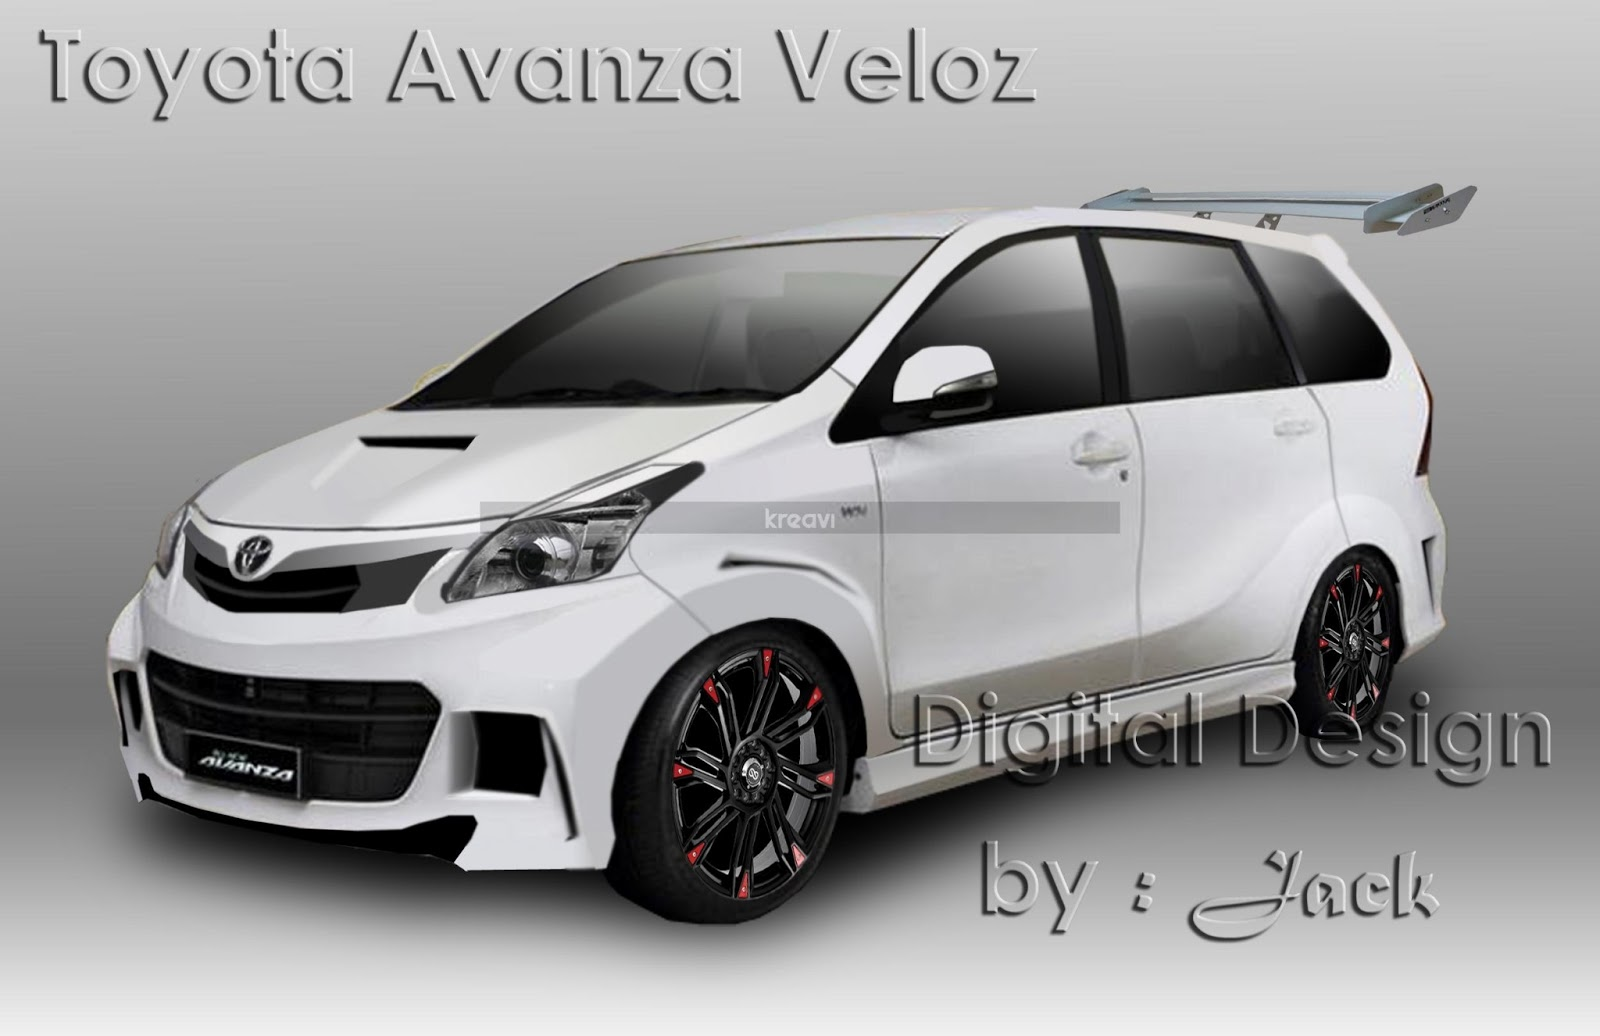 grand new avanza g 1.5 toyota yaris trd cvt hargamobil harga veloz baru the road